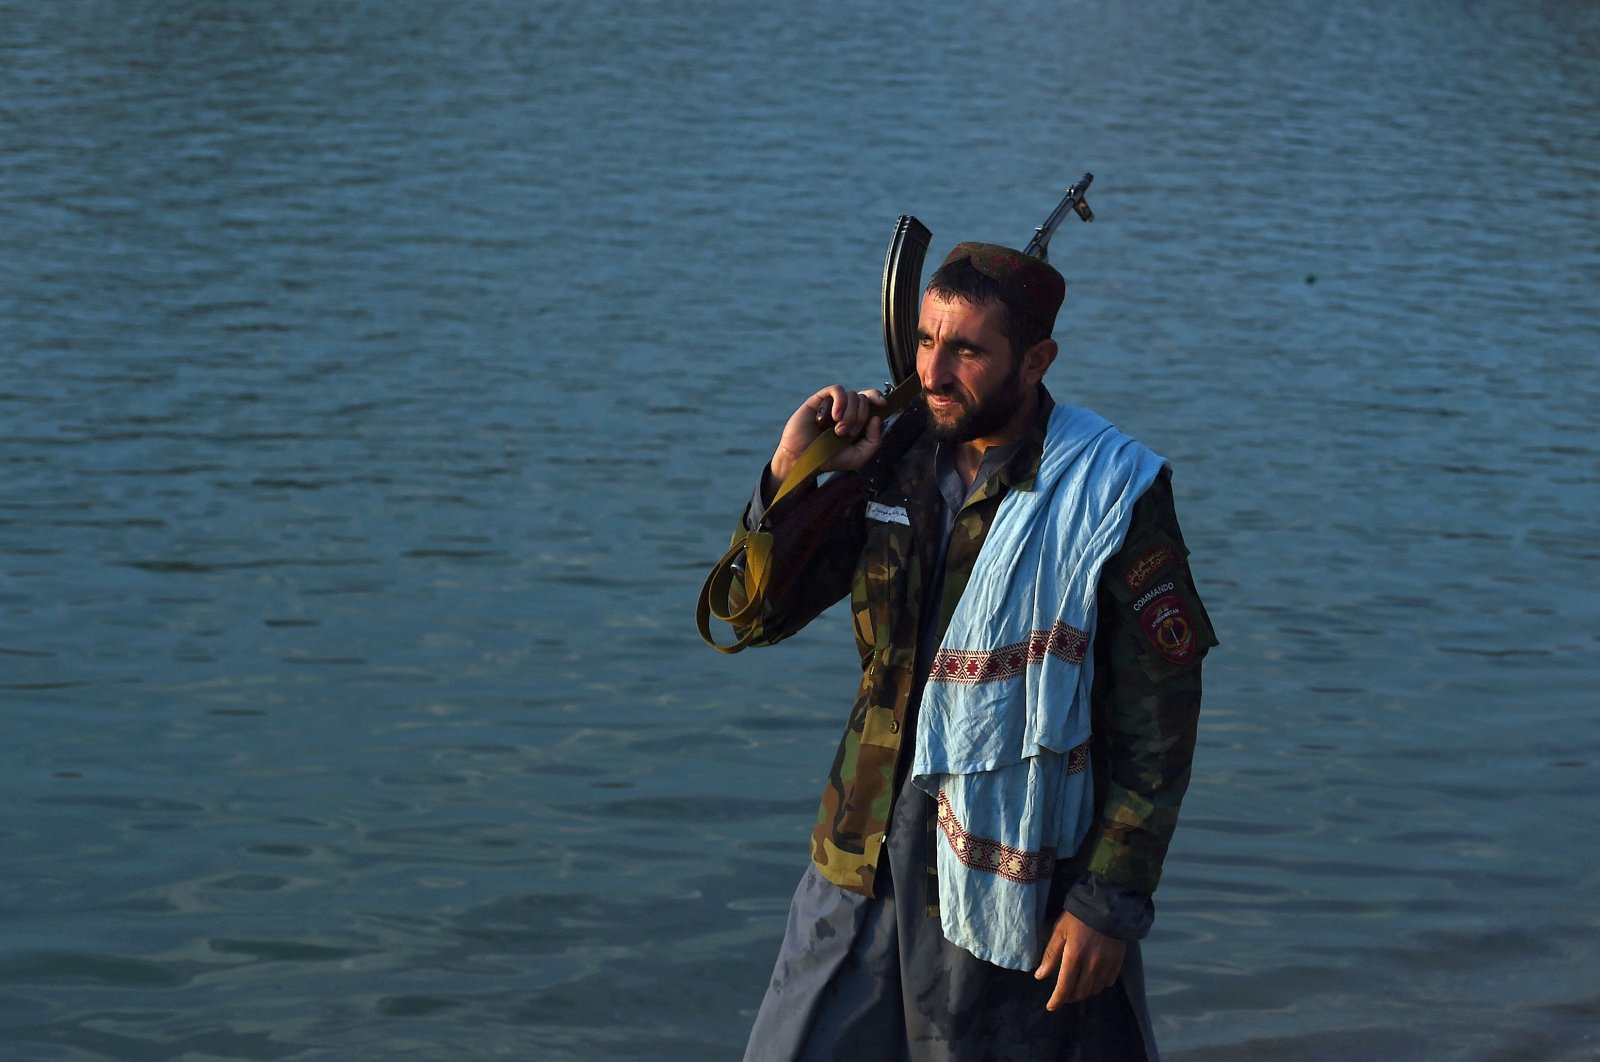 A Taliban fighter stands on the banks of Lake Qargha on the outskirts of Kabul, Afghanistan, Sept. 28, 2021. (AFP Photo)